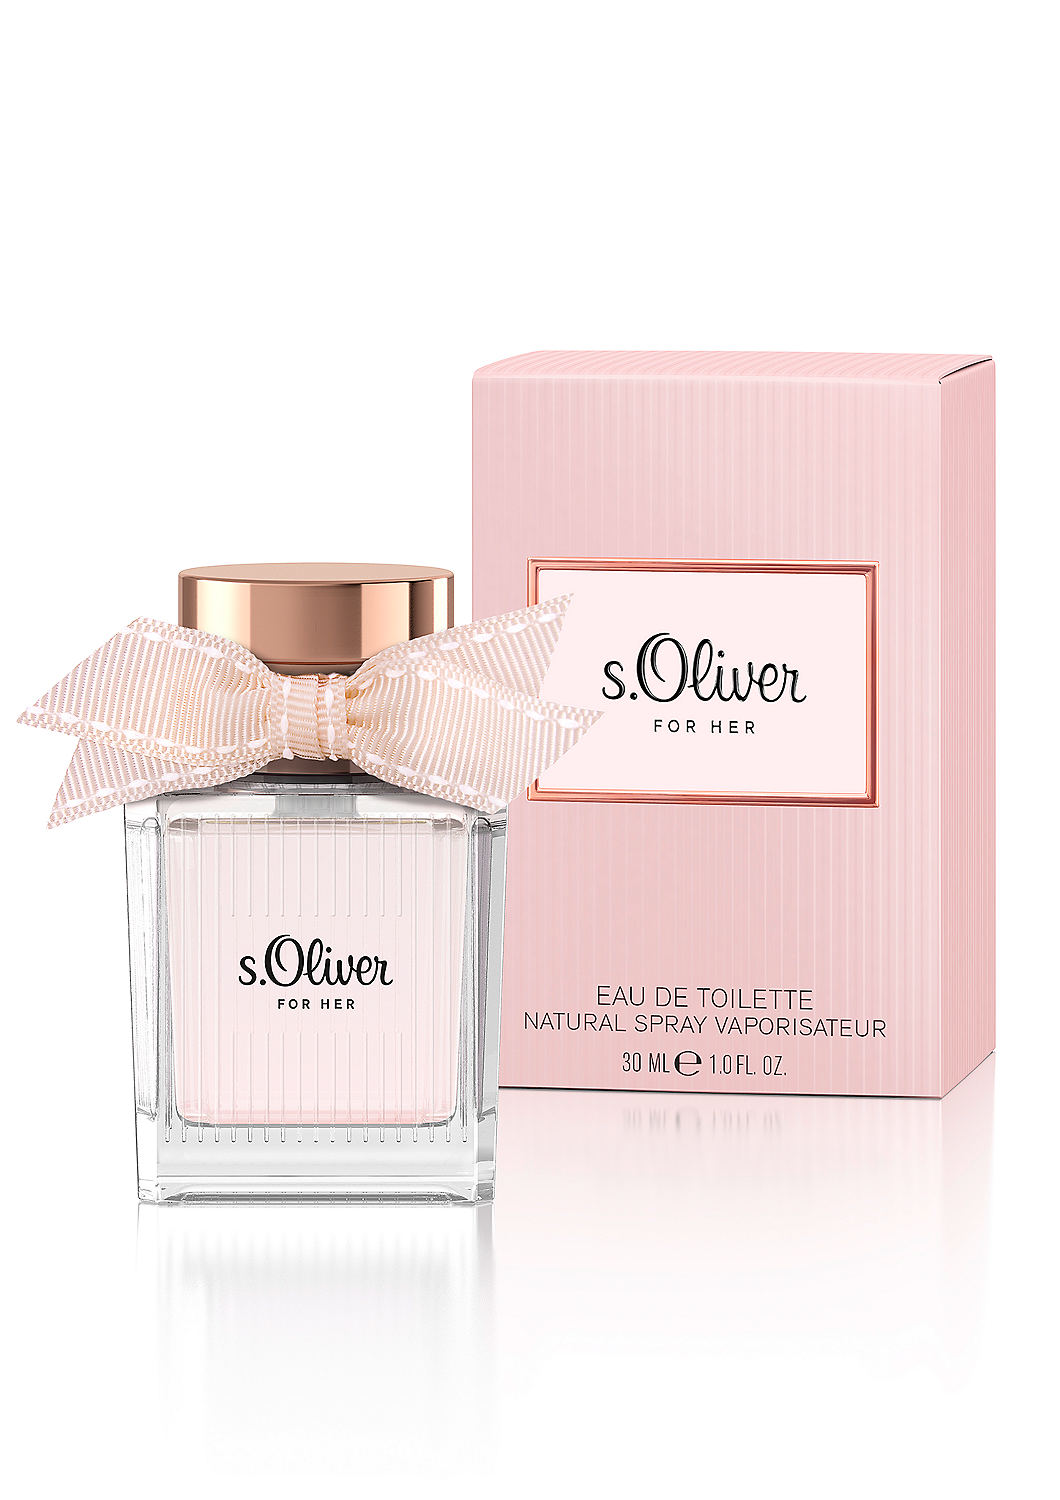 s.Oliver For Her E.d.T. 30ml kaufen | s.Oliver Shop